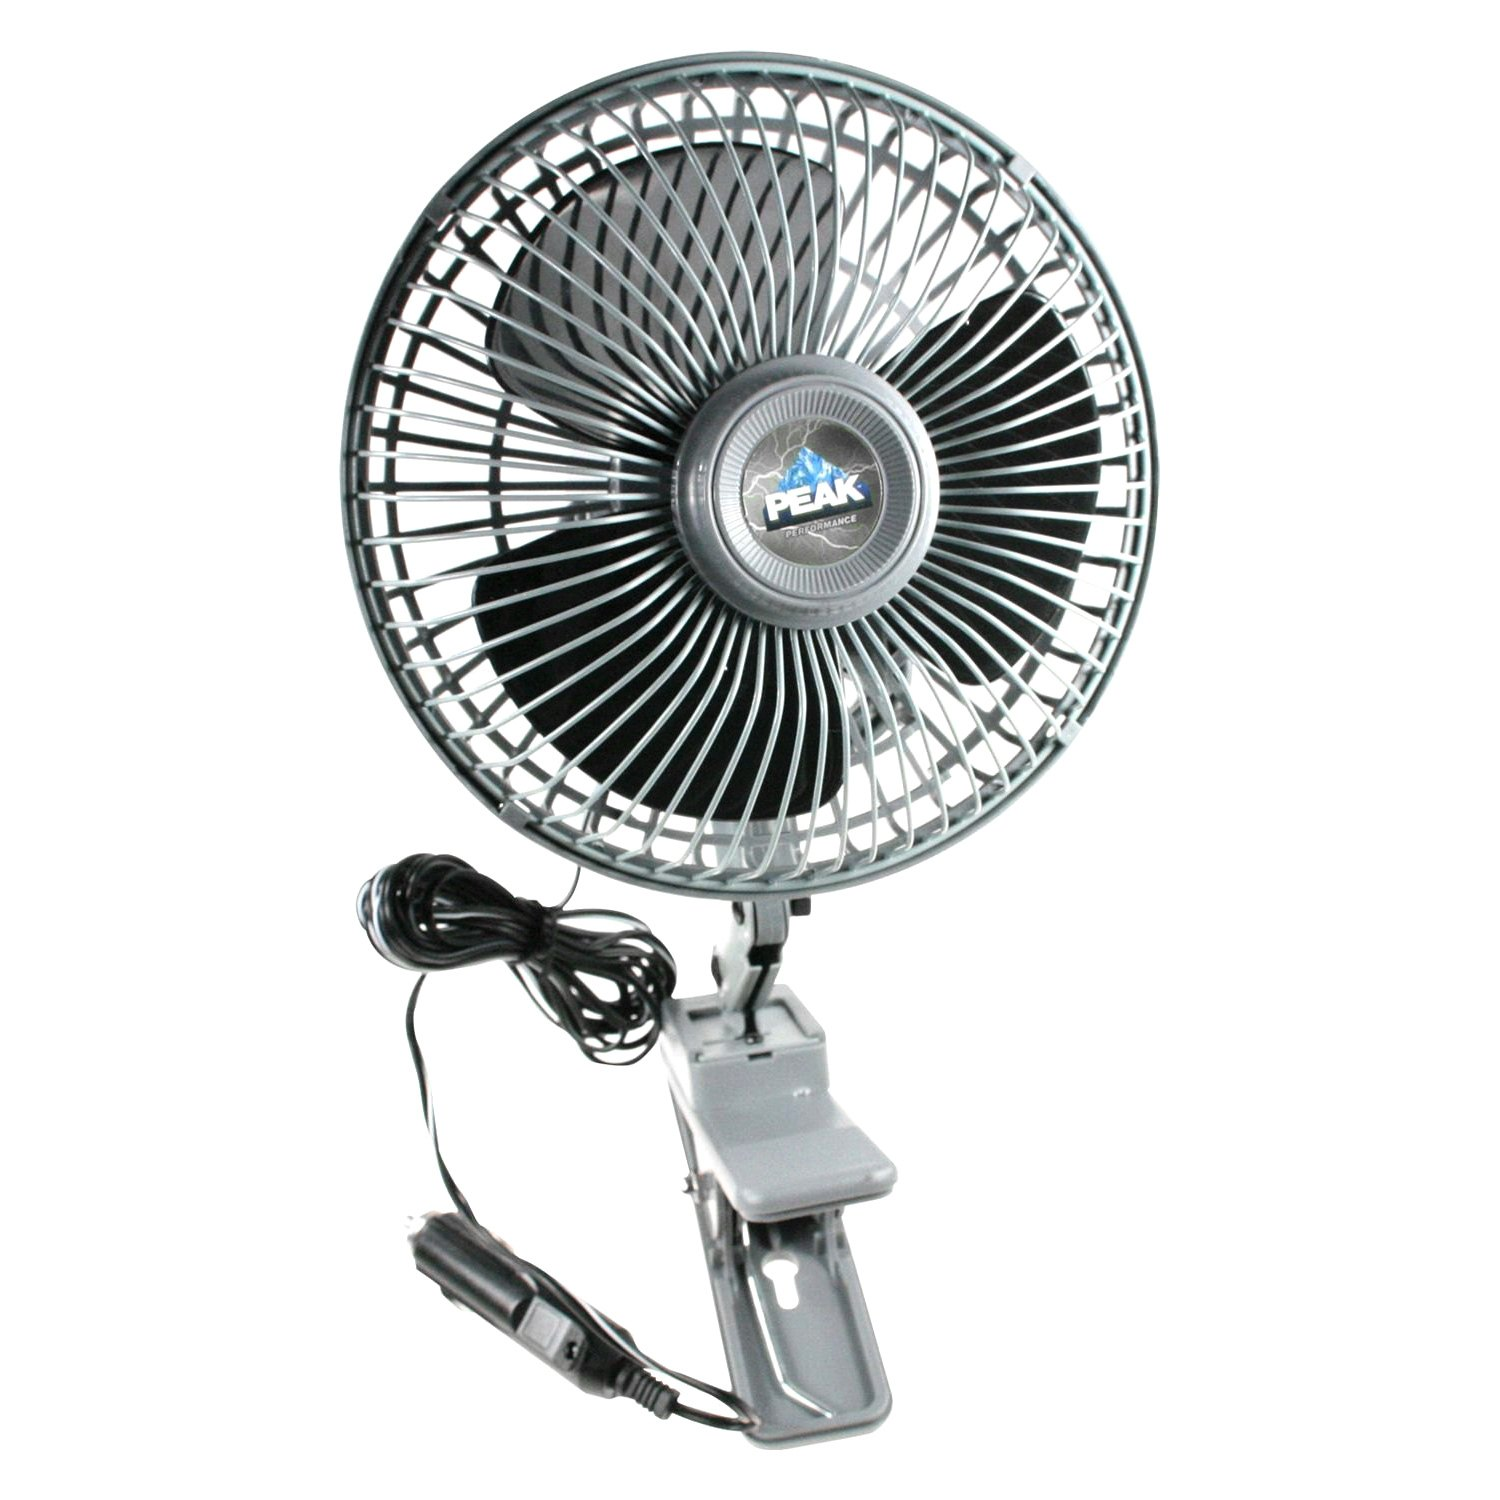 4 Inch 12 Volt Fan : Peak pkc jh v oscillating fan